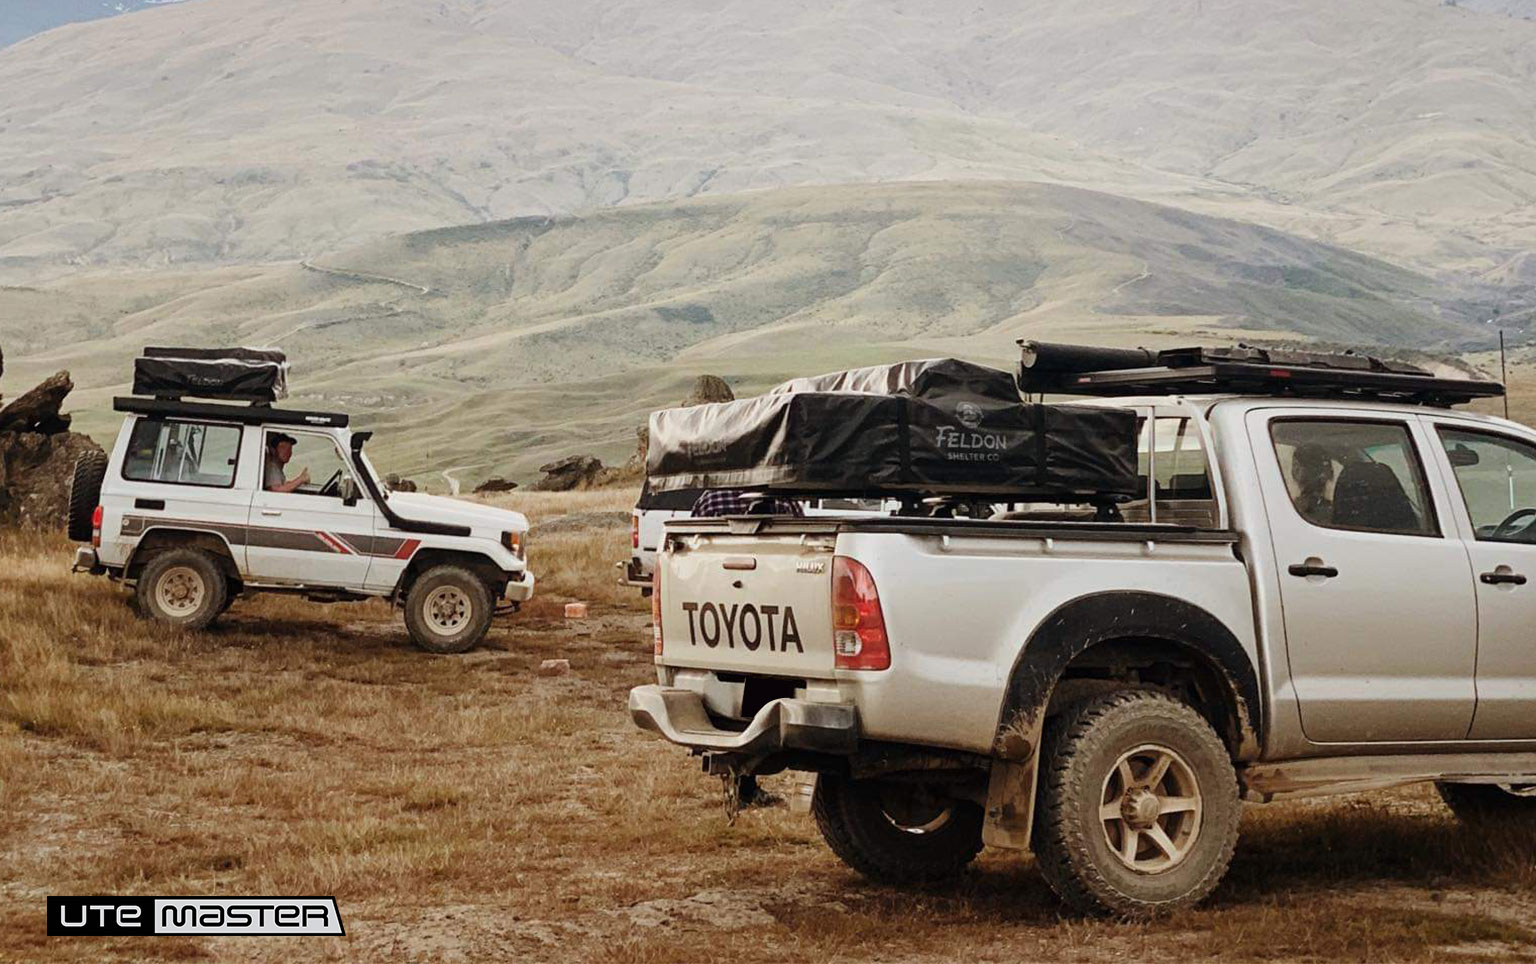 Hilux Roof Tent Sale Off 61